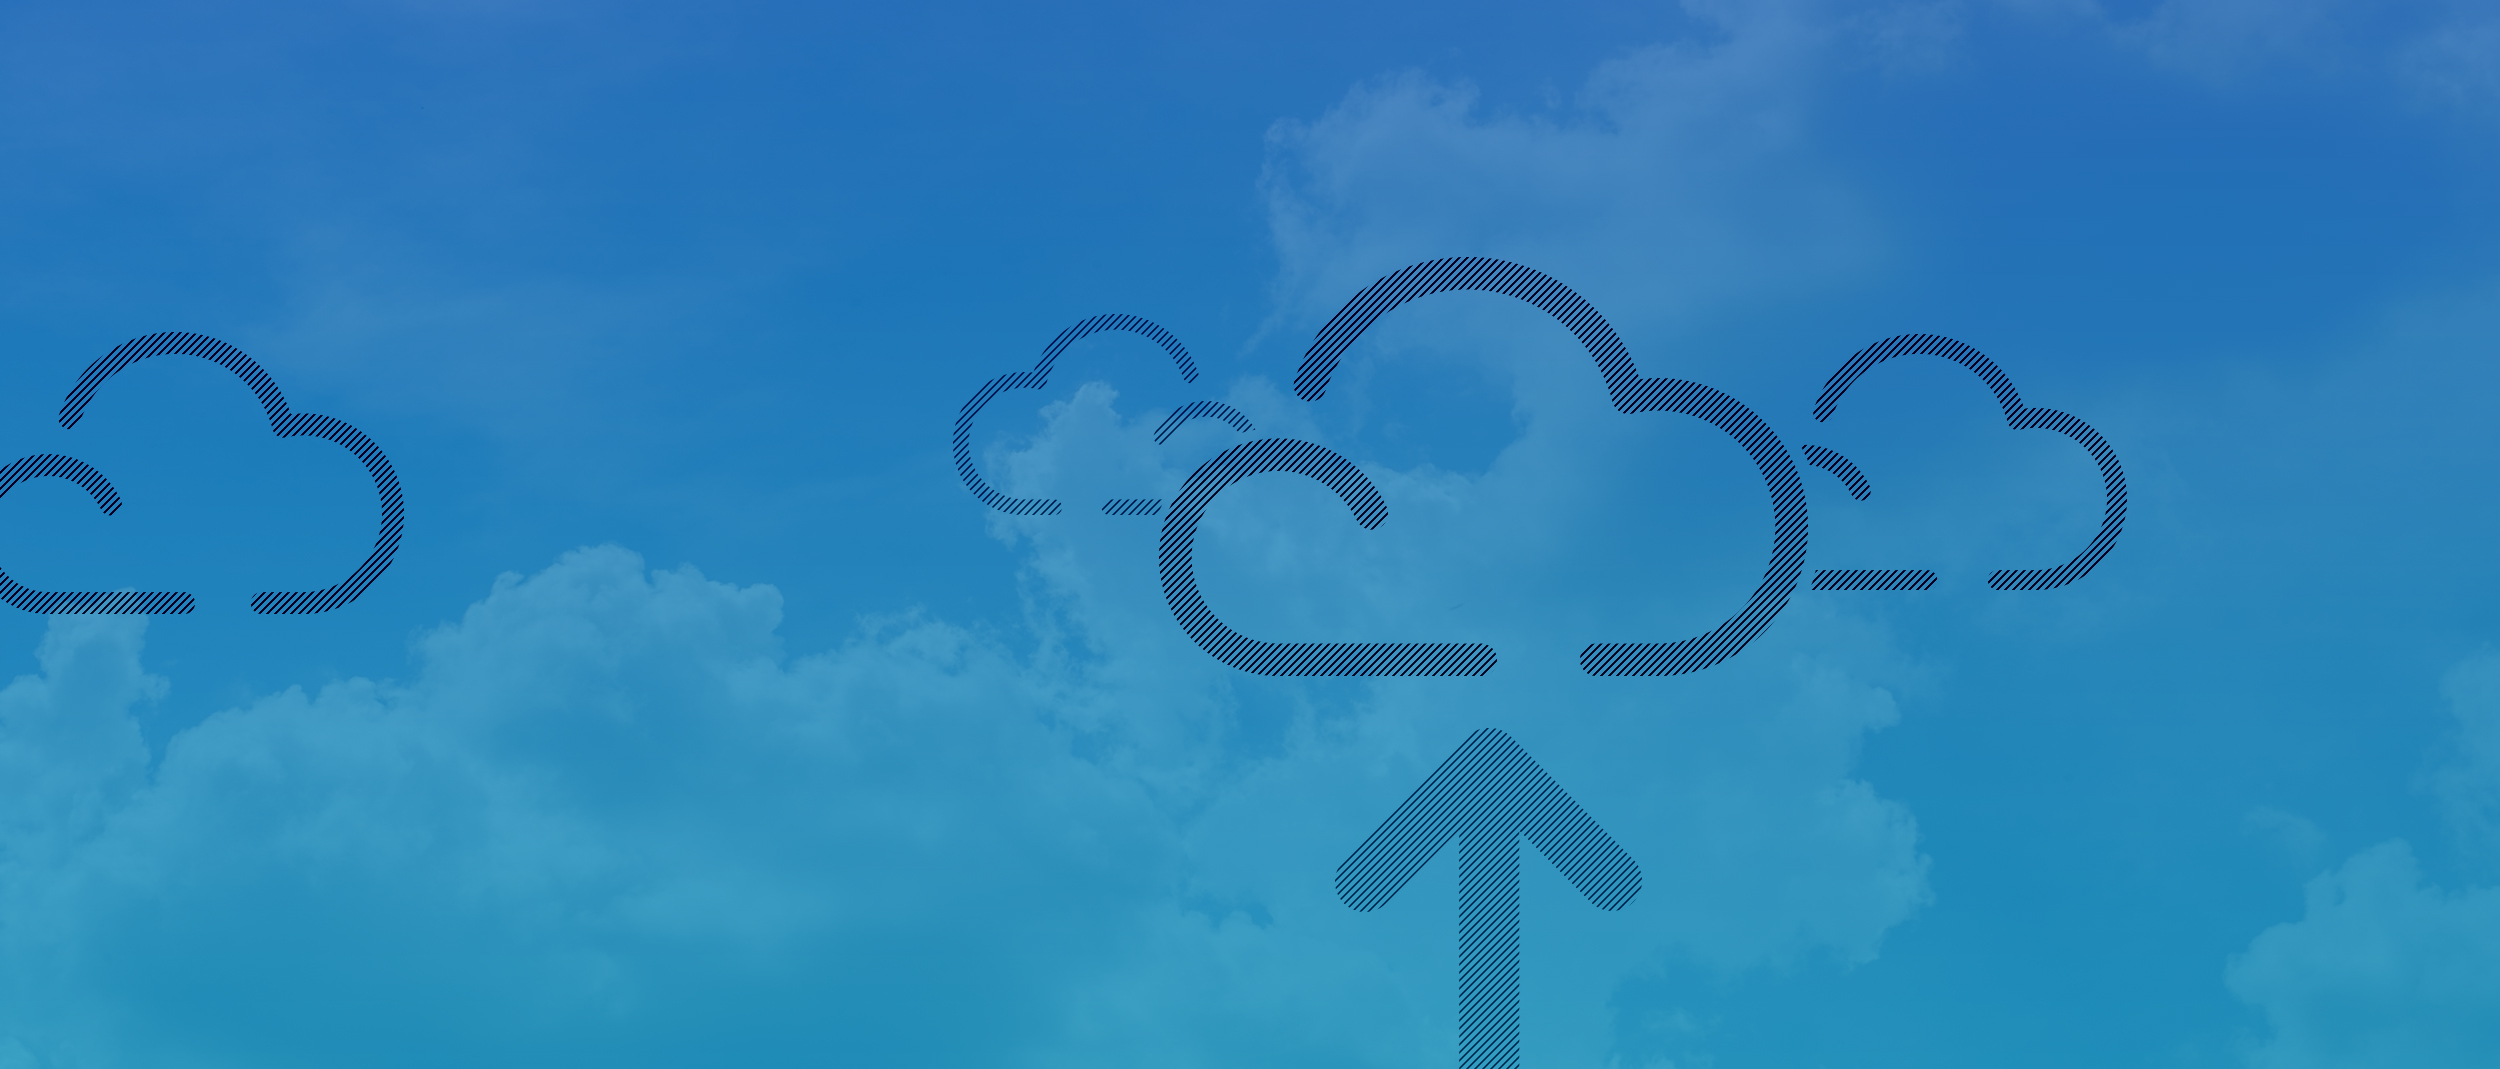 10 Reasons Why You Need an IT Solutions Provider to Guide Cloud Migration